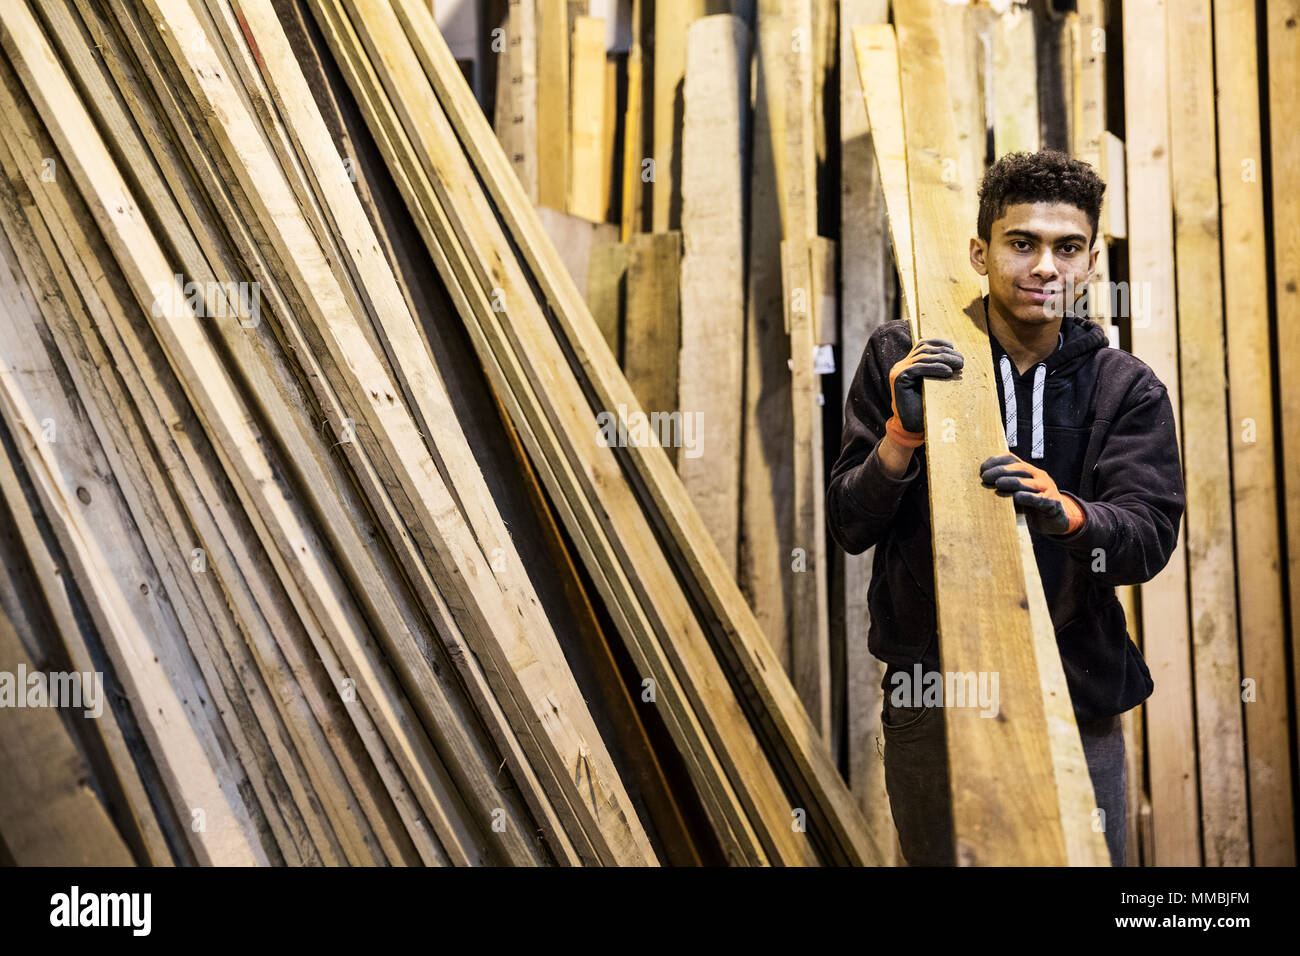 Young man wearing work gloves standing next to a stack of wooden planks in a warehouse, carrying long pieces of wood, looking at camera. - Stock Image